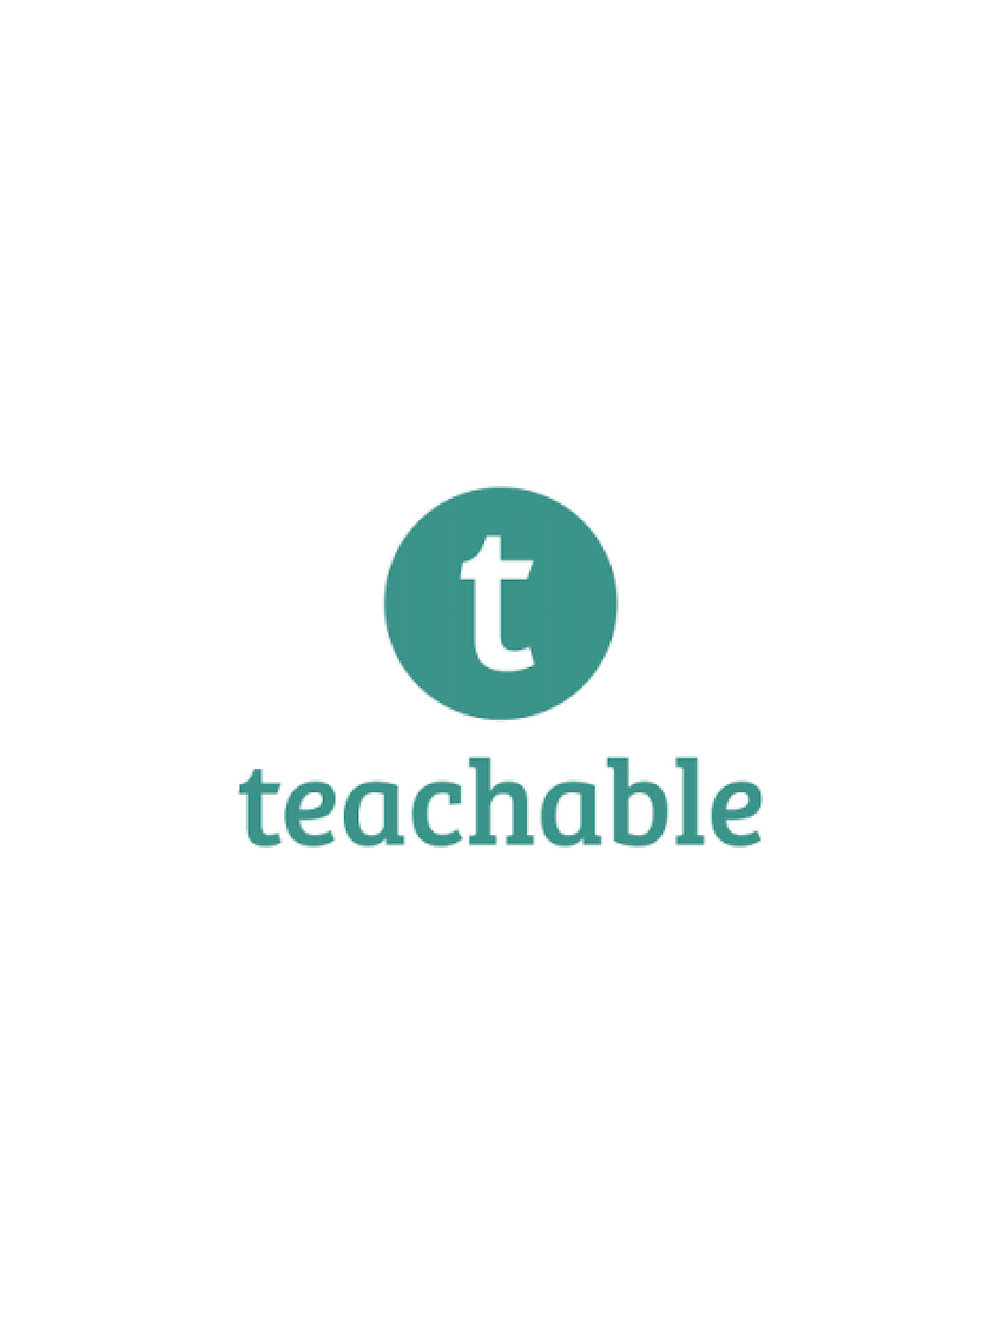 TEACH-ABLEvisit the site